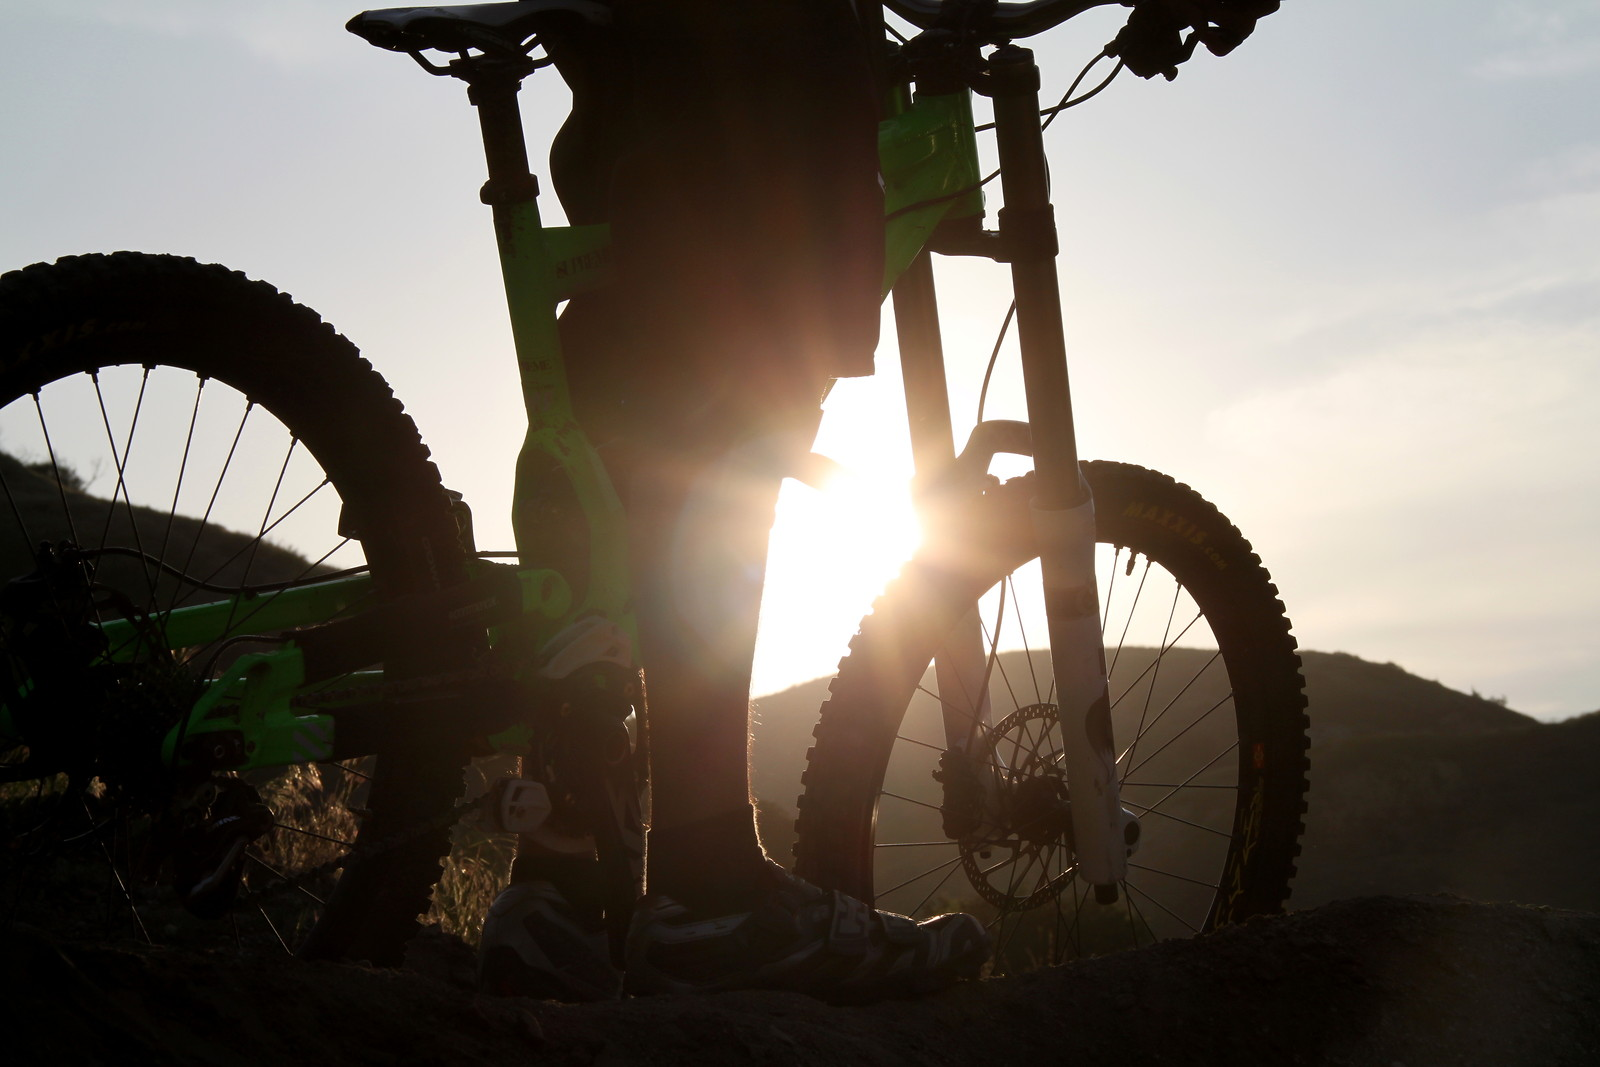 Shadd-sunset - Mbarosko - Mountain Biking Pictures - Vital MTB